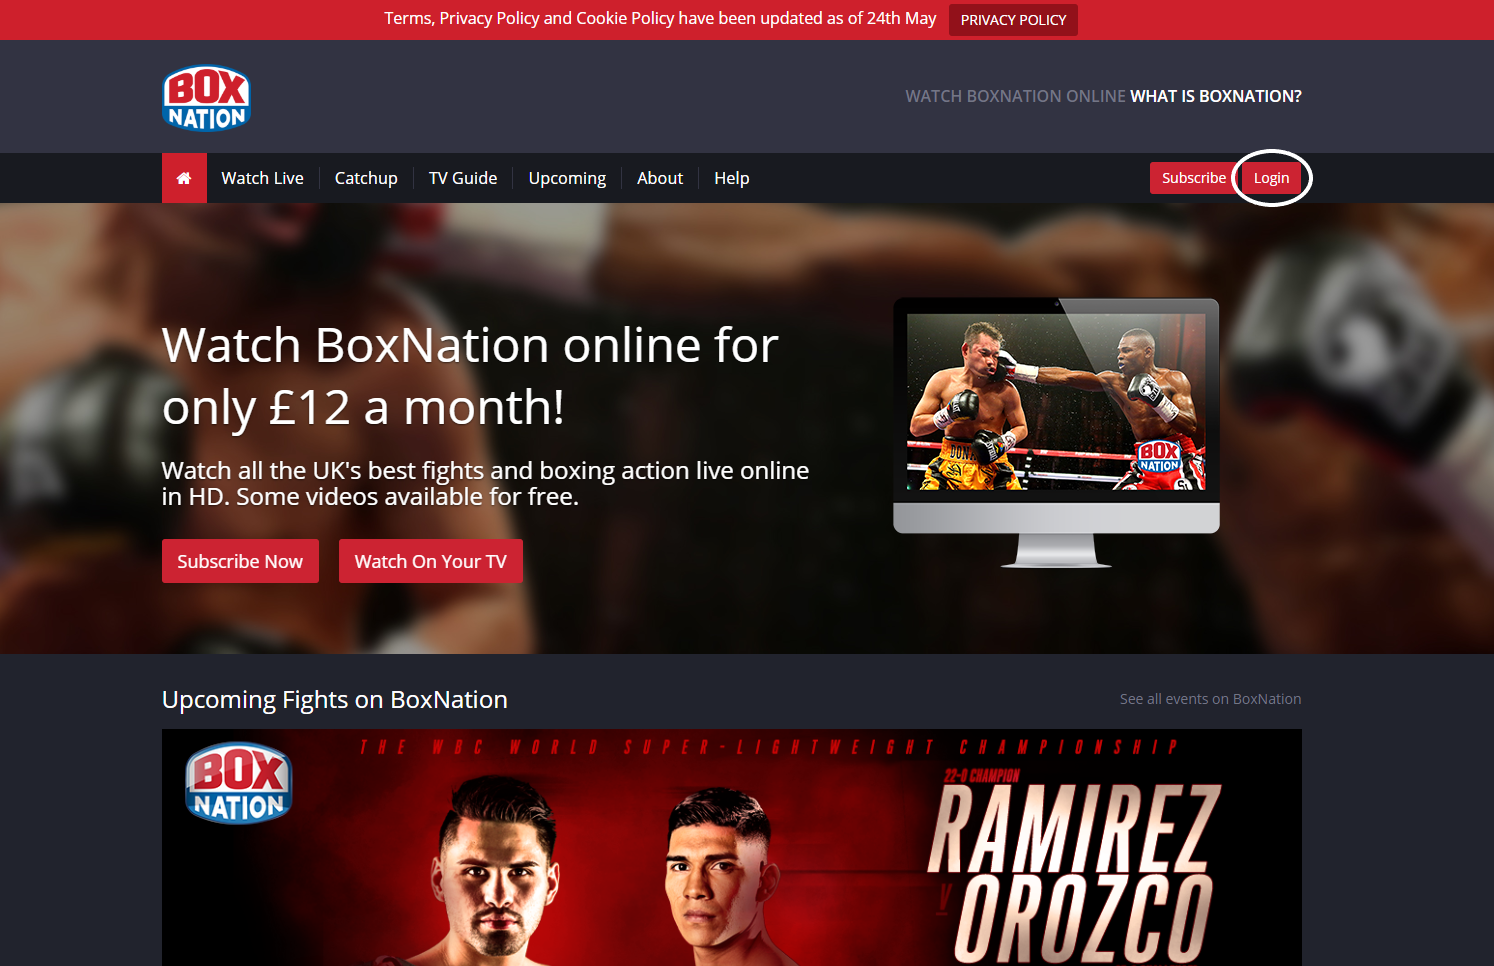 How to Cancel Your BoxNation Subscription